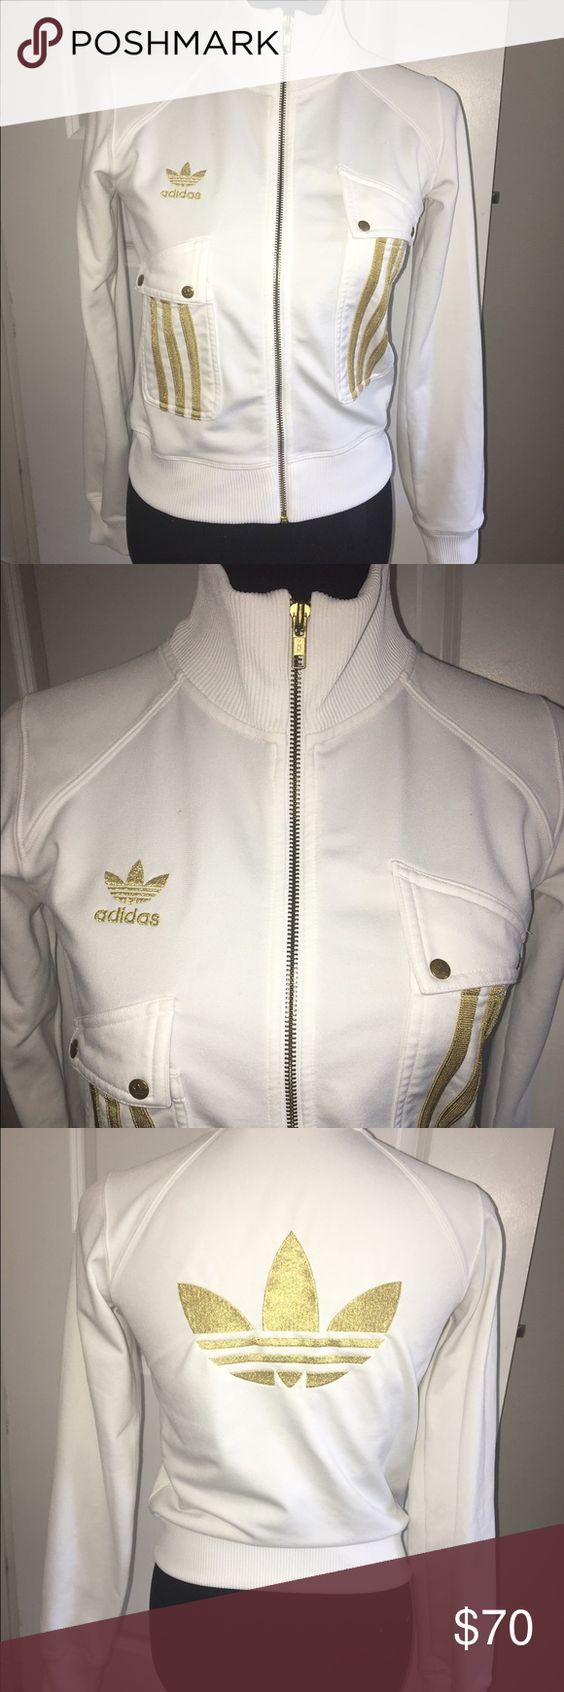 Adidas Jacket Very soft, in excellent condition white/gold jacket! Sold out! Retail:$169 Adidas Jackets & Coats Vests